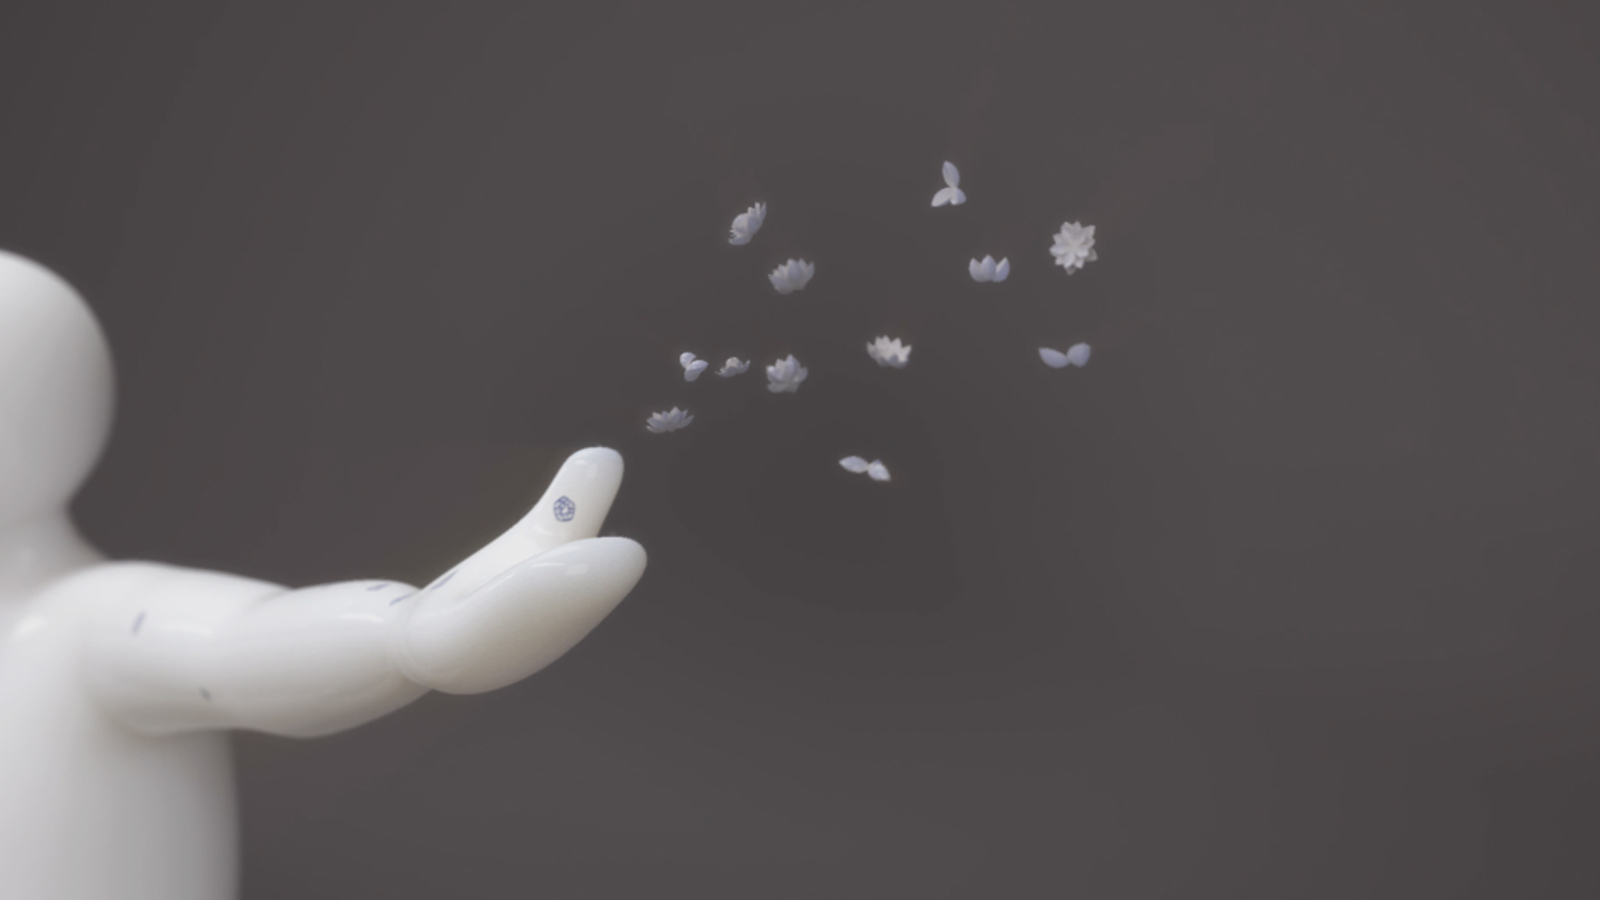 A 3D still of a ceramic character, ceramic flowers are flying out of their hand.